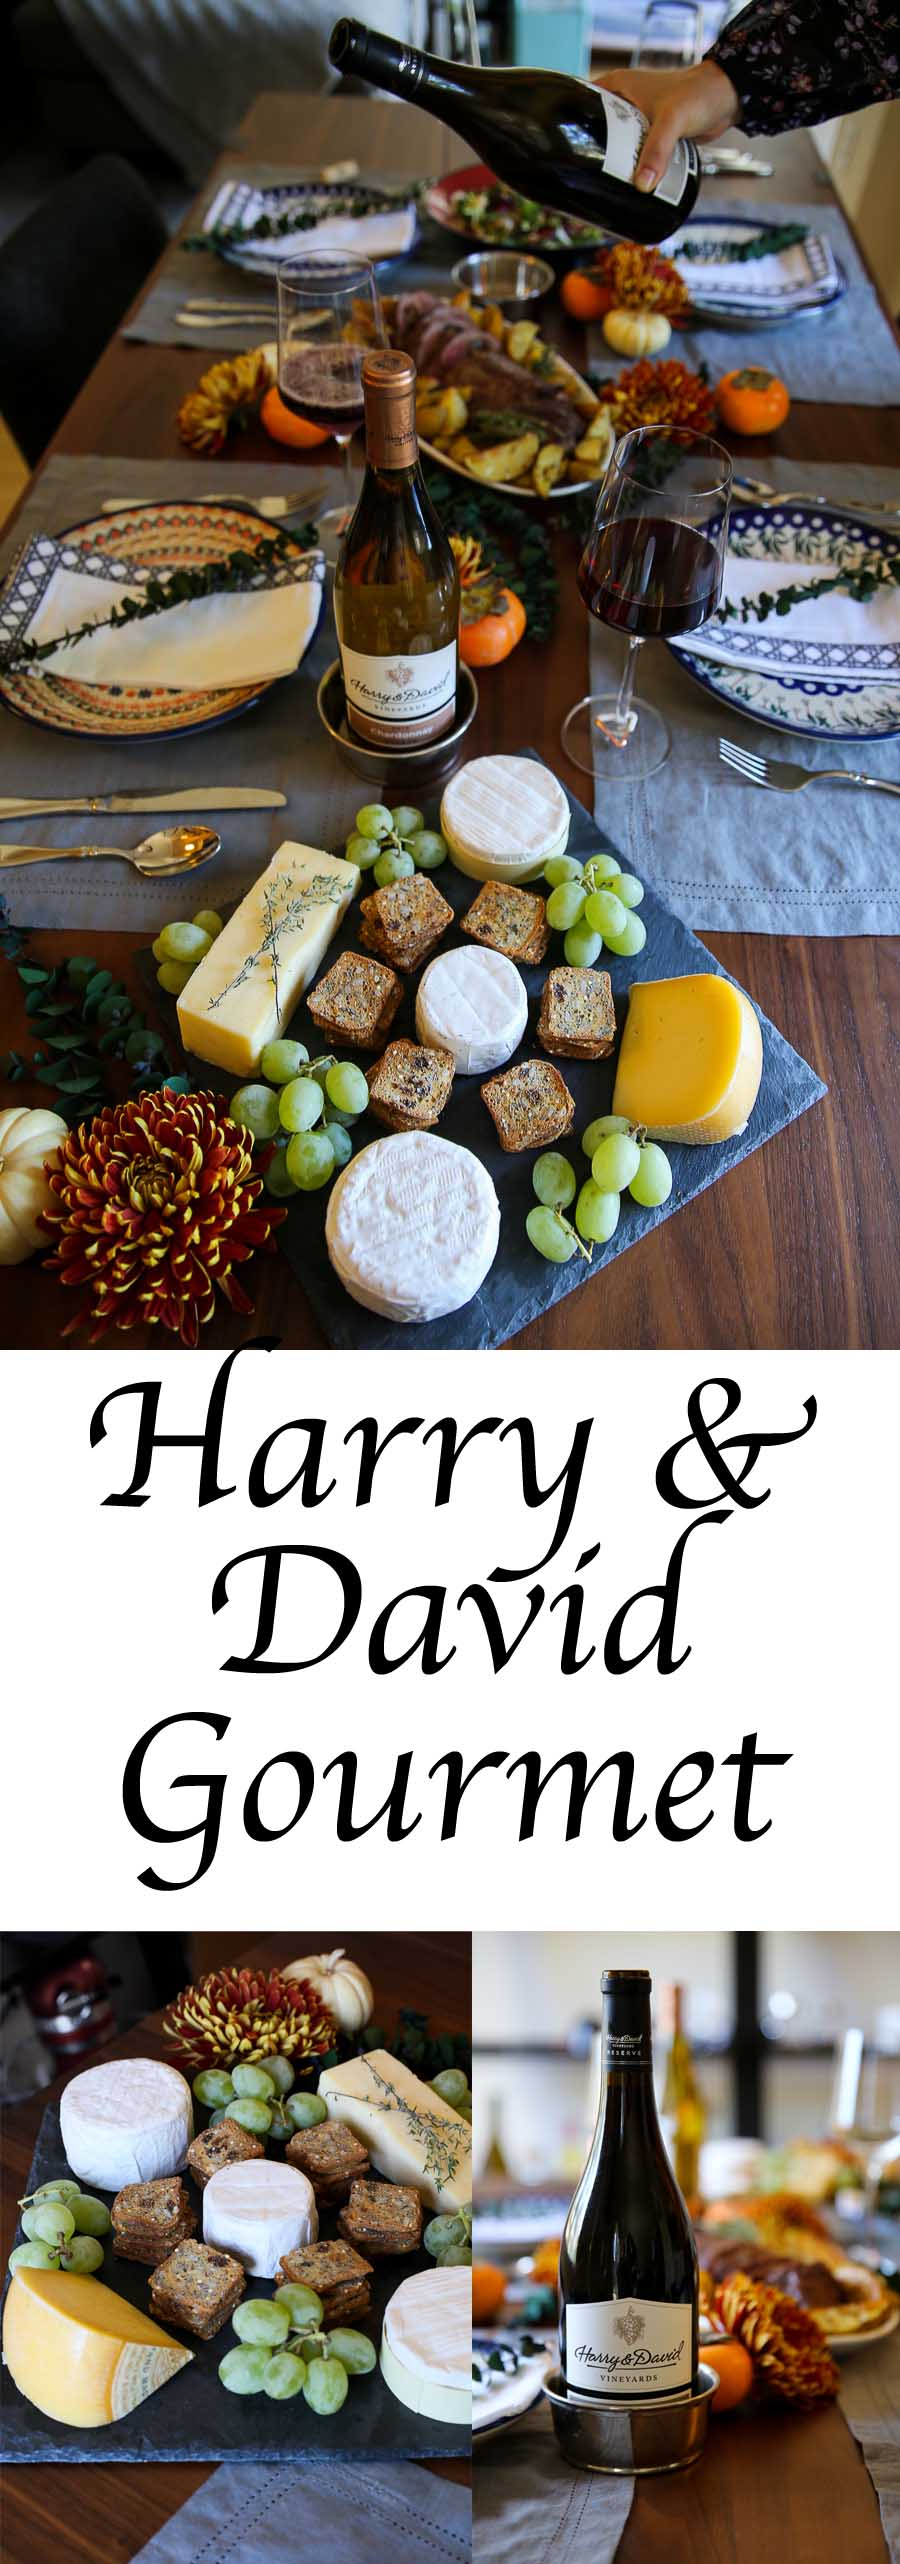 Harry and David Gourmet Dinner Delivery Review. Chateaubriand, California Cowgirl Creamery Cheese Plate, and Wine Collection. A delicious dinner for guests and to send others. #harryanddavid #chateaubriand #beed #cheese #cheeseplate #entertaining #houseguests #holidays #tablescape #falldecor #wine #entertainathome #entertain